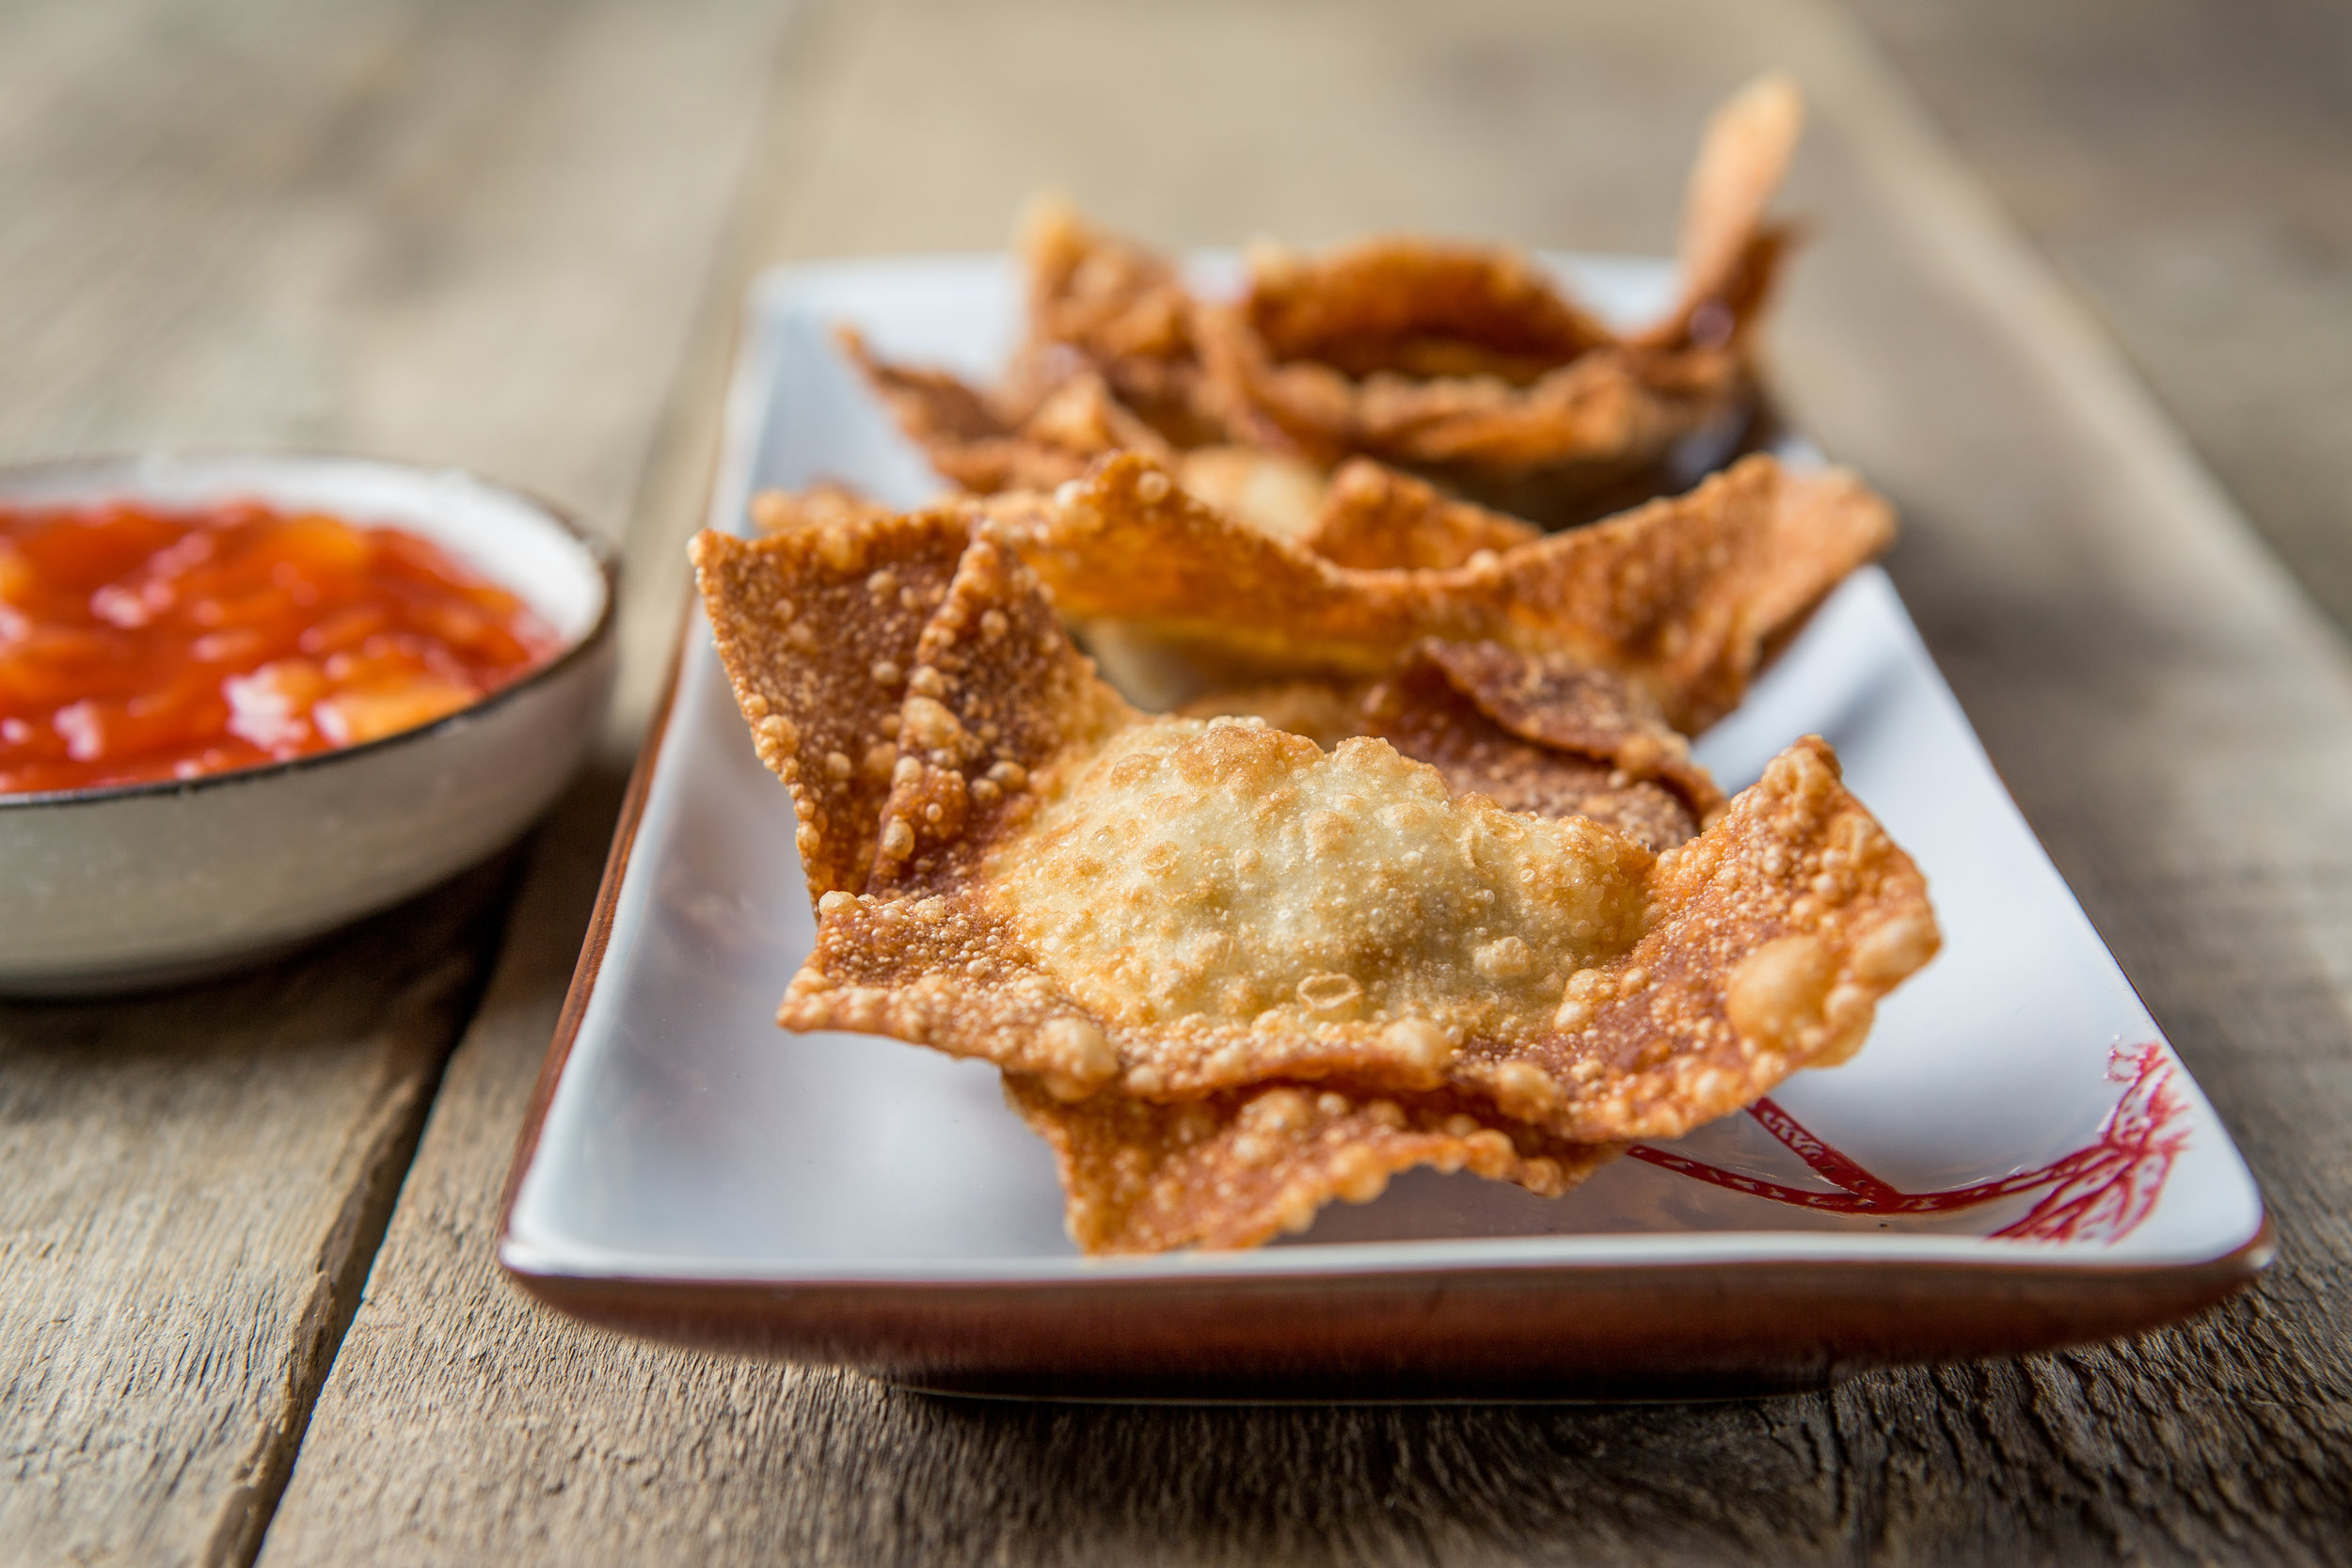 Fried Wontons as an appetizer. See below for making wontons for hot pot use.